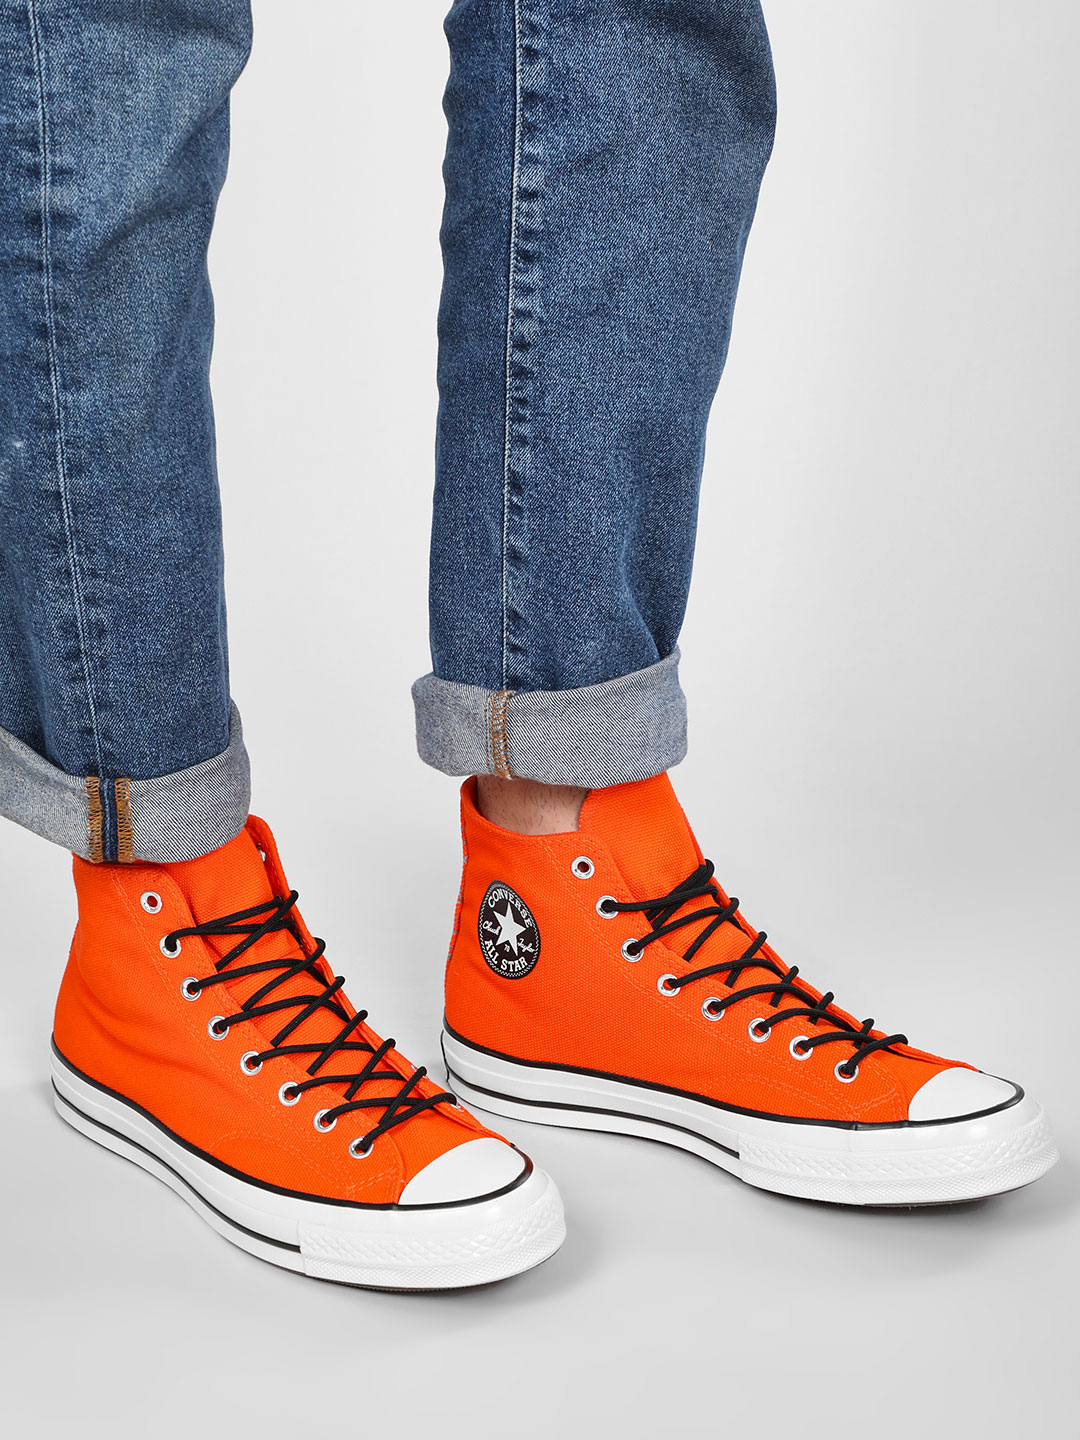 Converse Orange Chuck 70 Tech Hiker High Top Sneakers 1